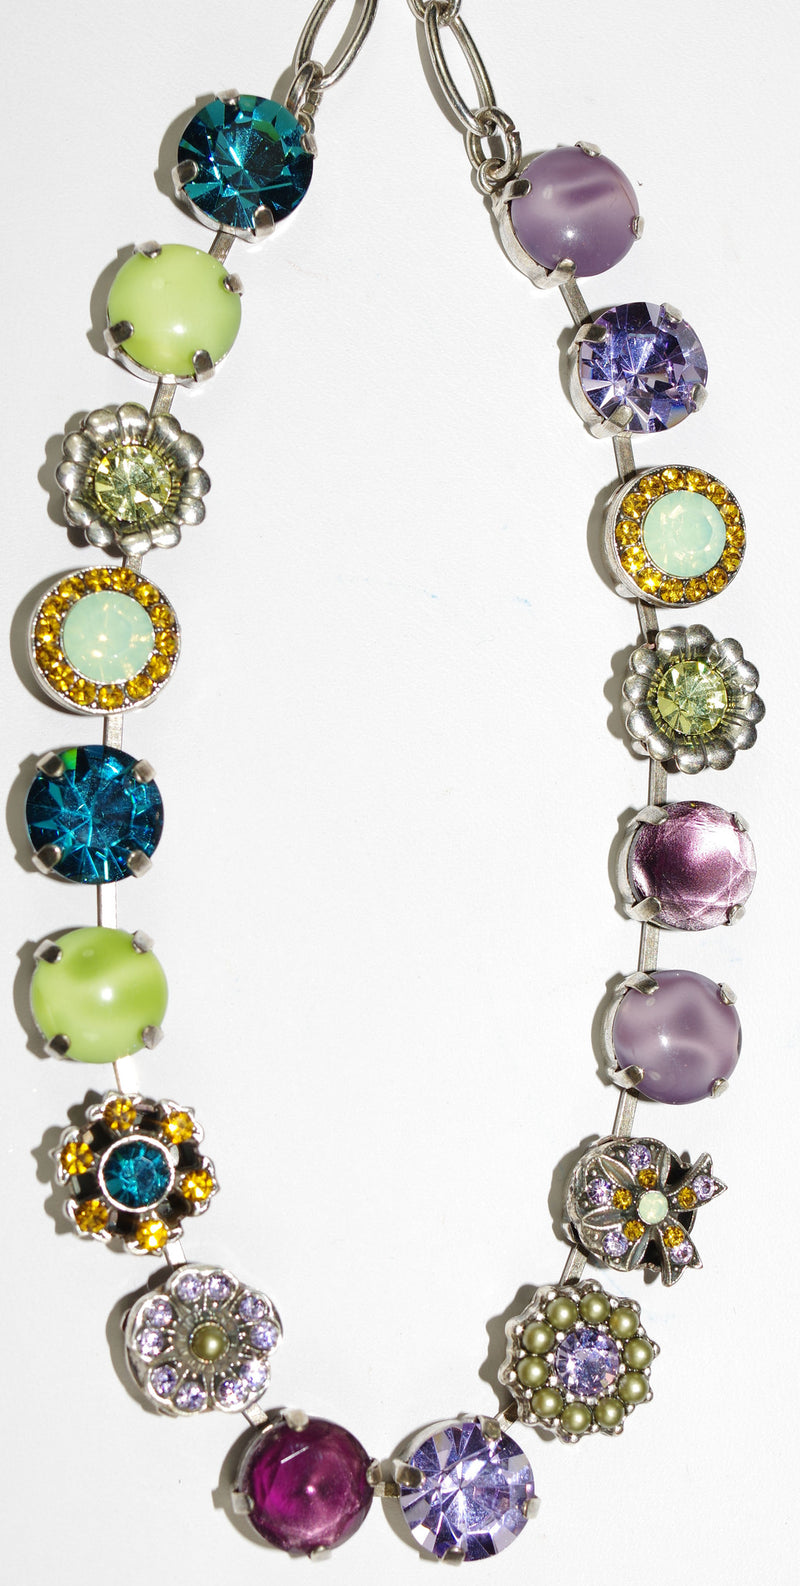 "MARIANA NECKLACE LILAC: lavender, green, blue, amber stones in silver setting, 18"" adjustable chain"